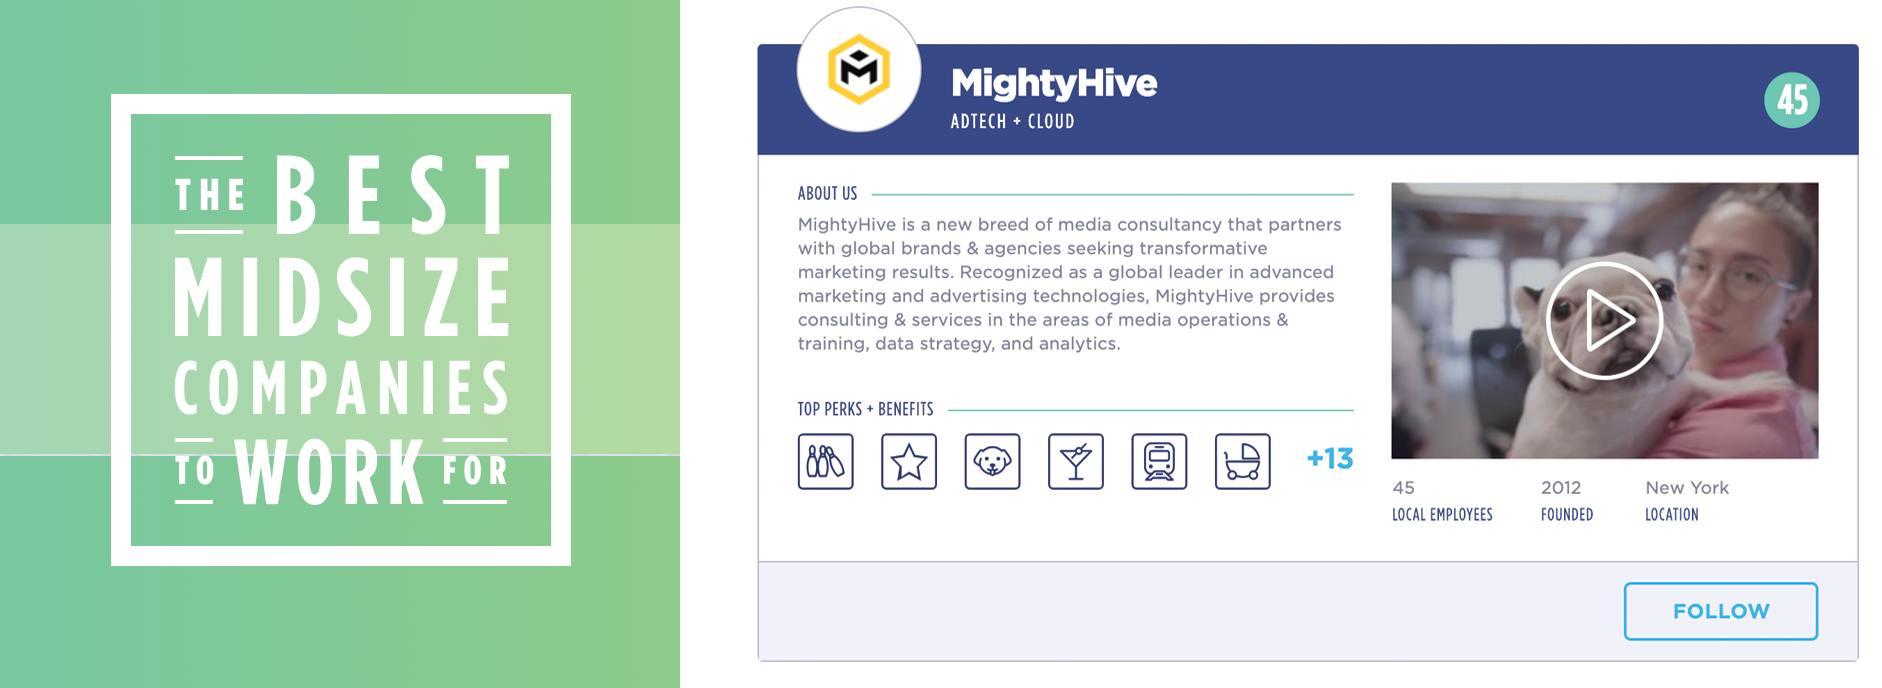 mightyhive named to best midsize company to work for ranking image